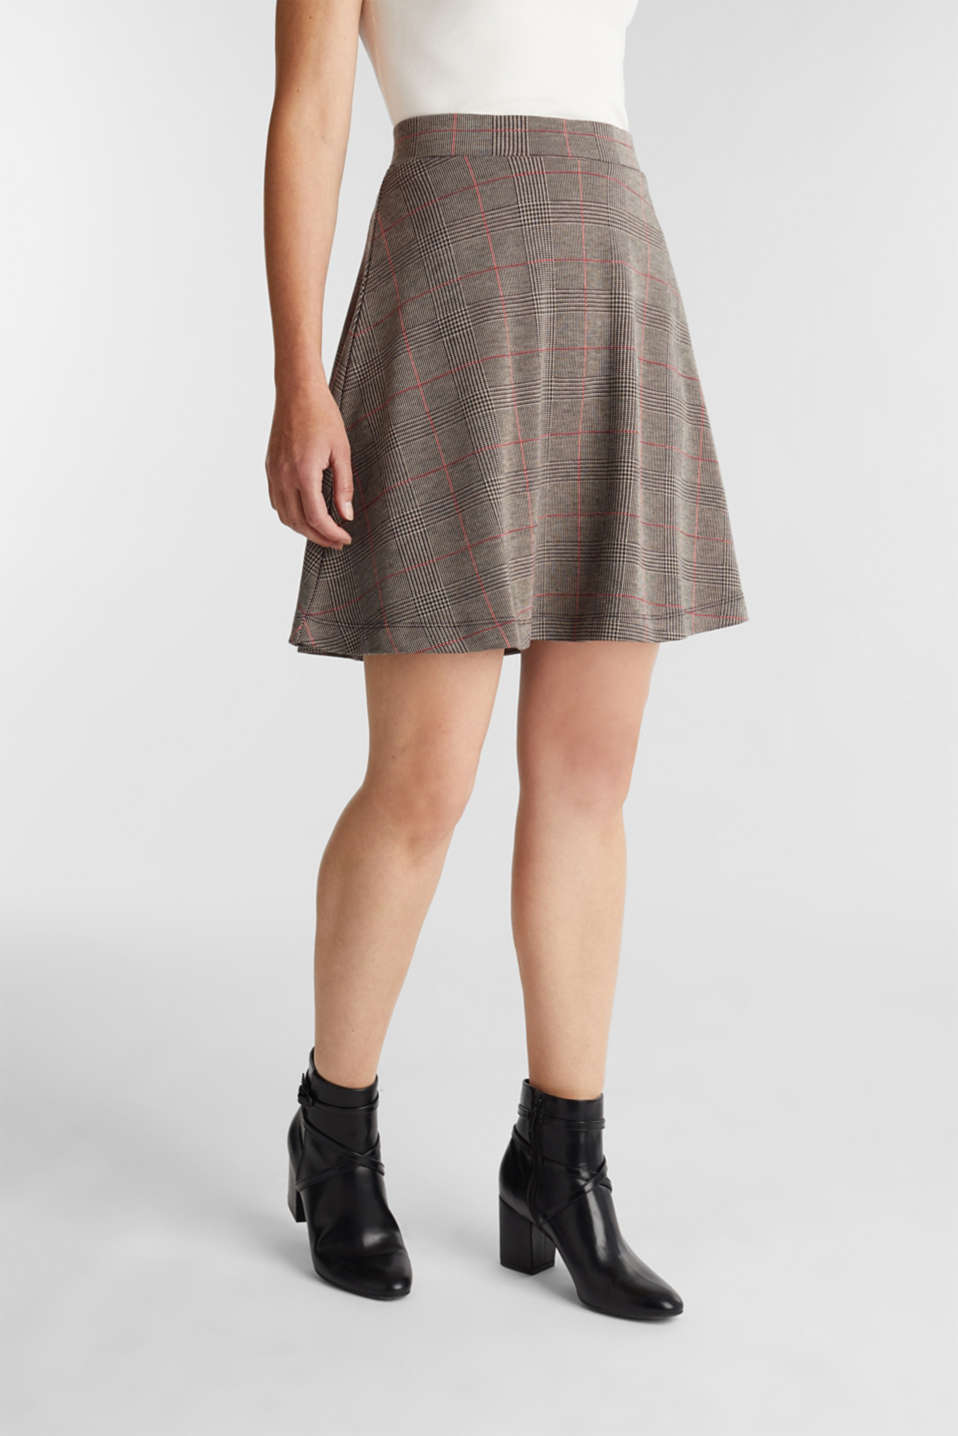 Esprit - Jersey skirt with a Prince of Wales check pattern